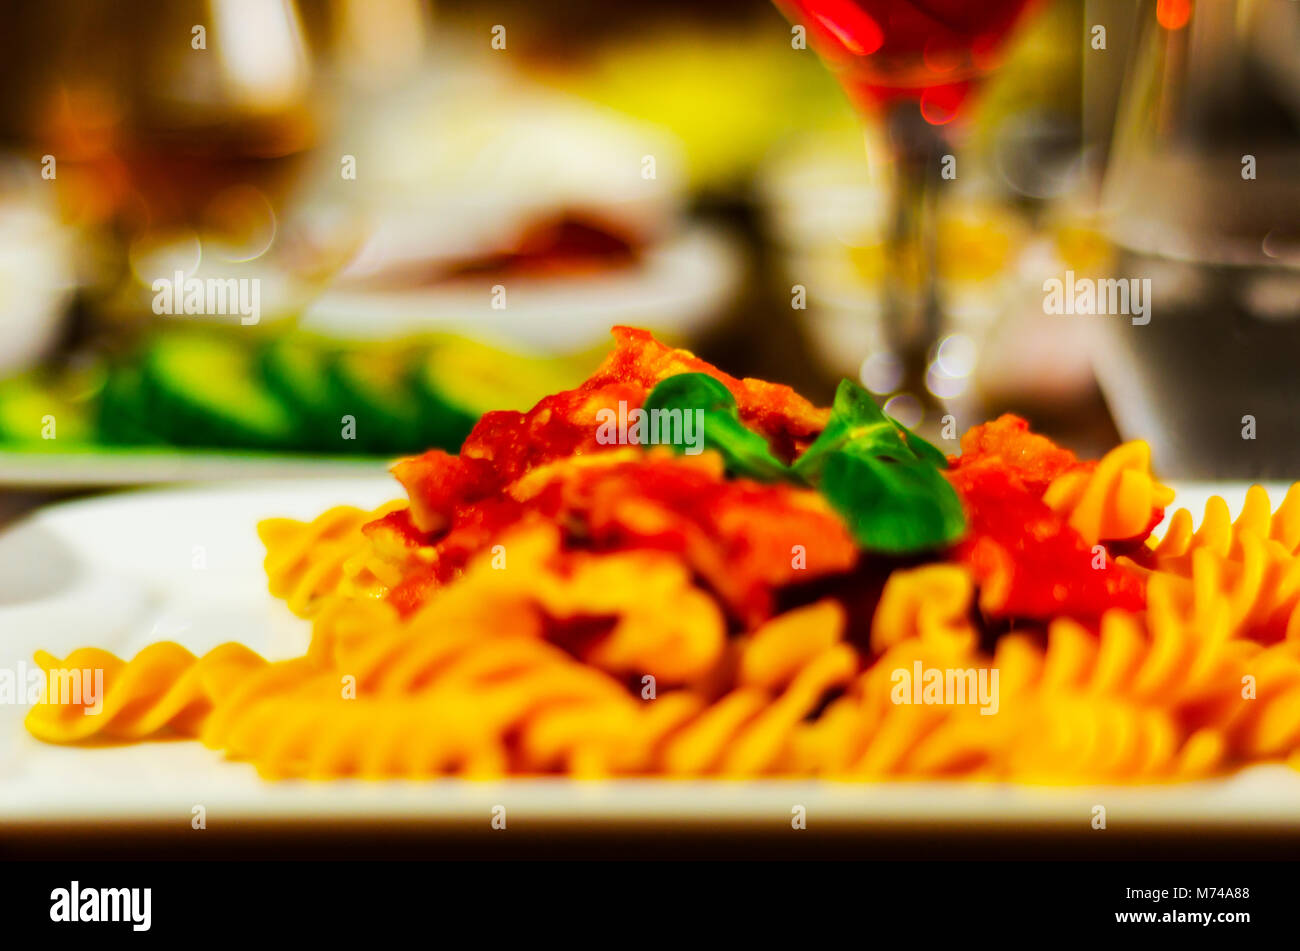 tasty dish with pasta, meat and sauce, Italian dish, fast and simple dish, lunch or dinner - Stock Image